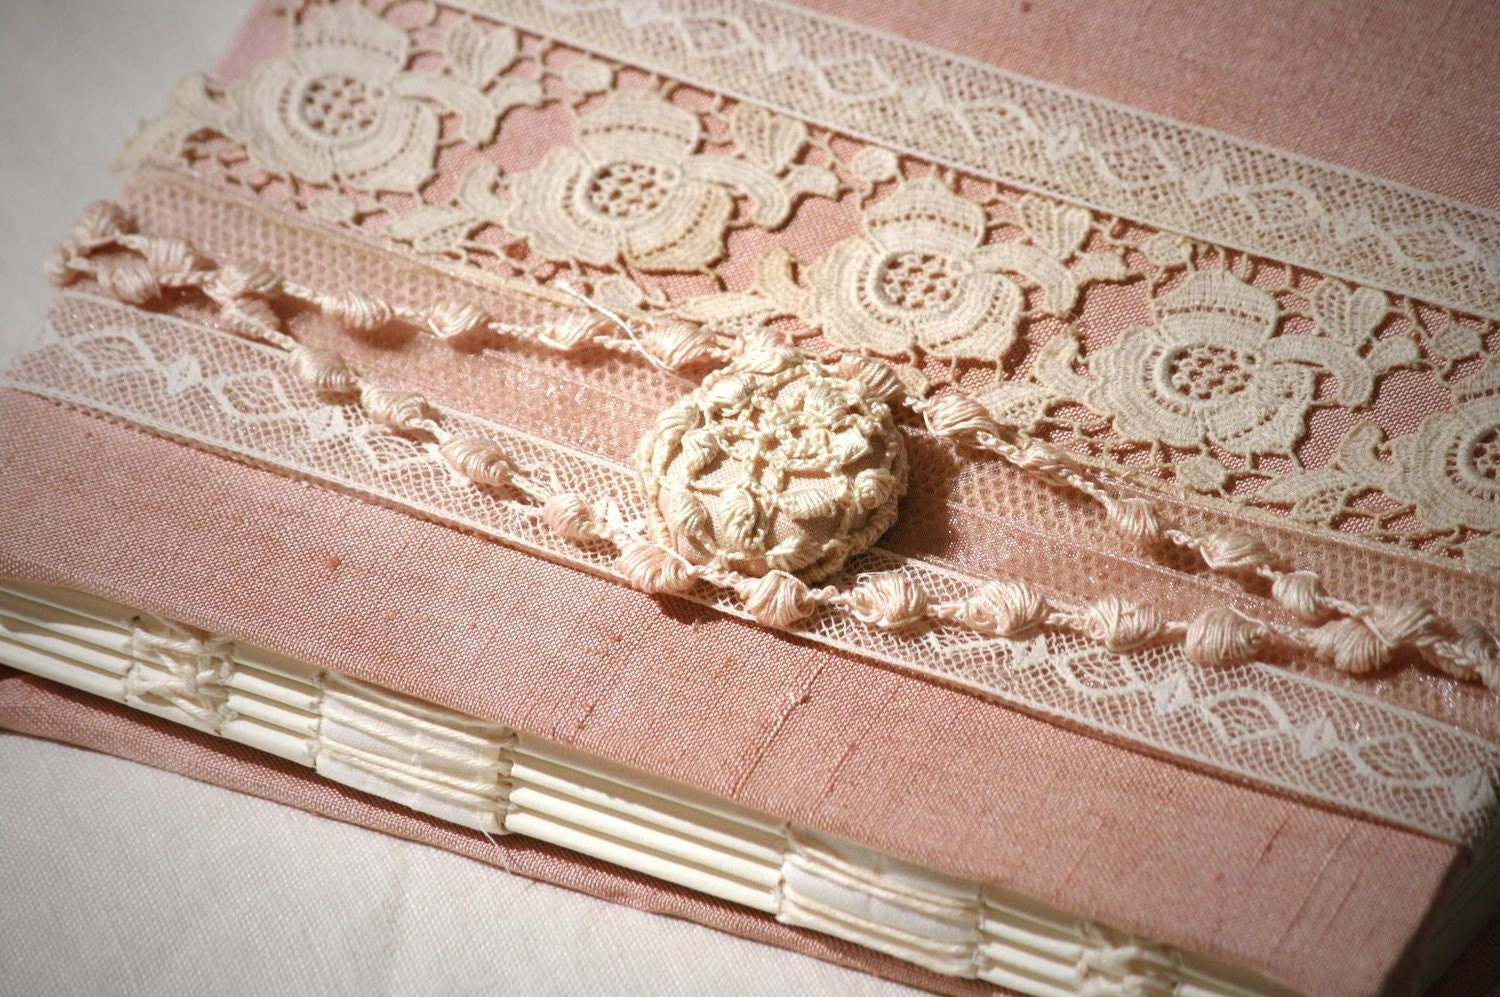 Guest Book - Rose Dust - Lace Wedding Guest Book, Ivory Lace and Pink Cream Pearls Embroidery on Netting Lace, Personalize, Handmade